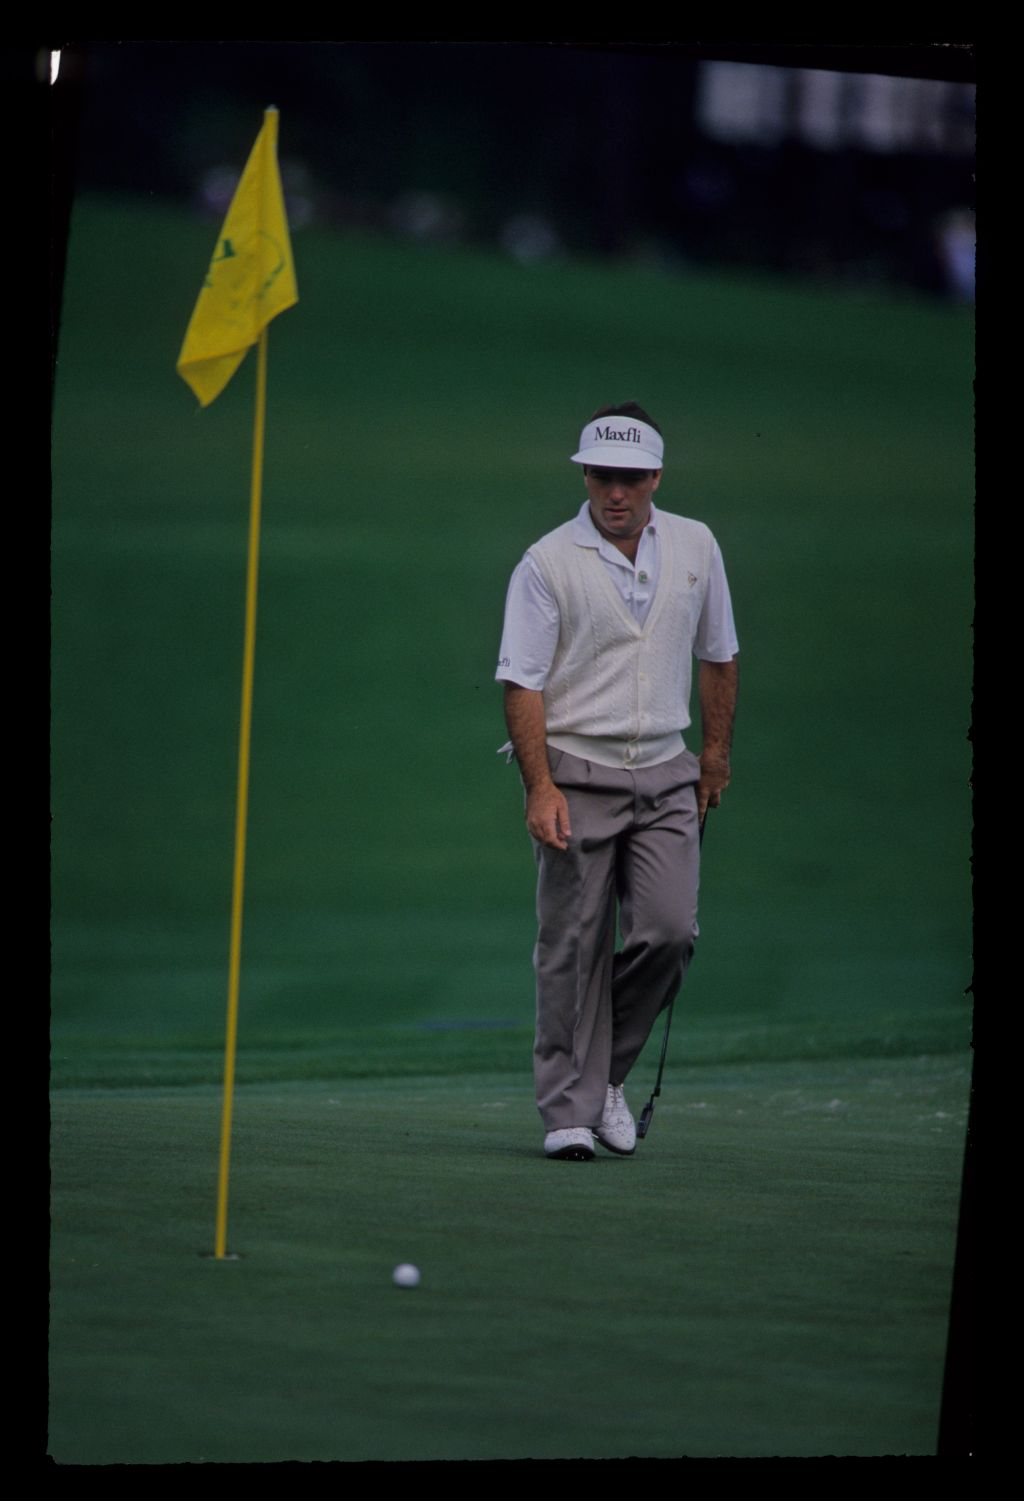 Craig Parry walking after a putt during the 1992 Masters